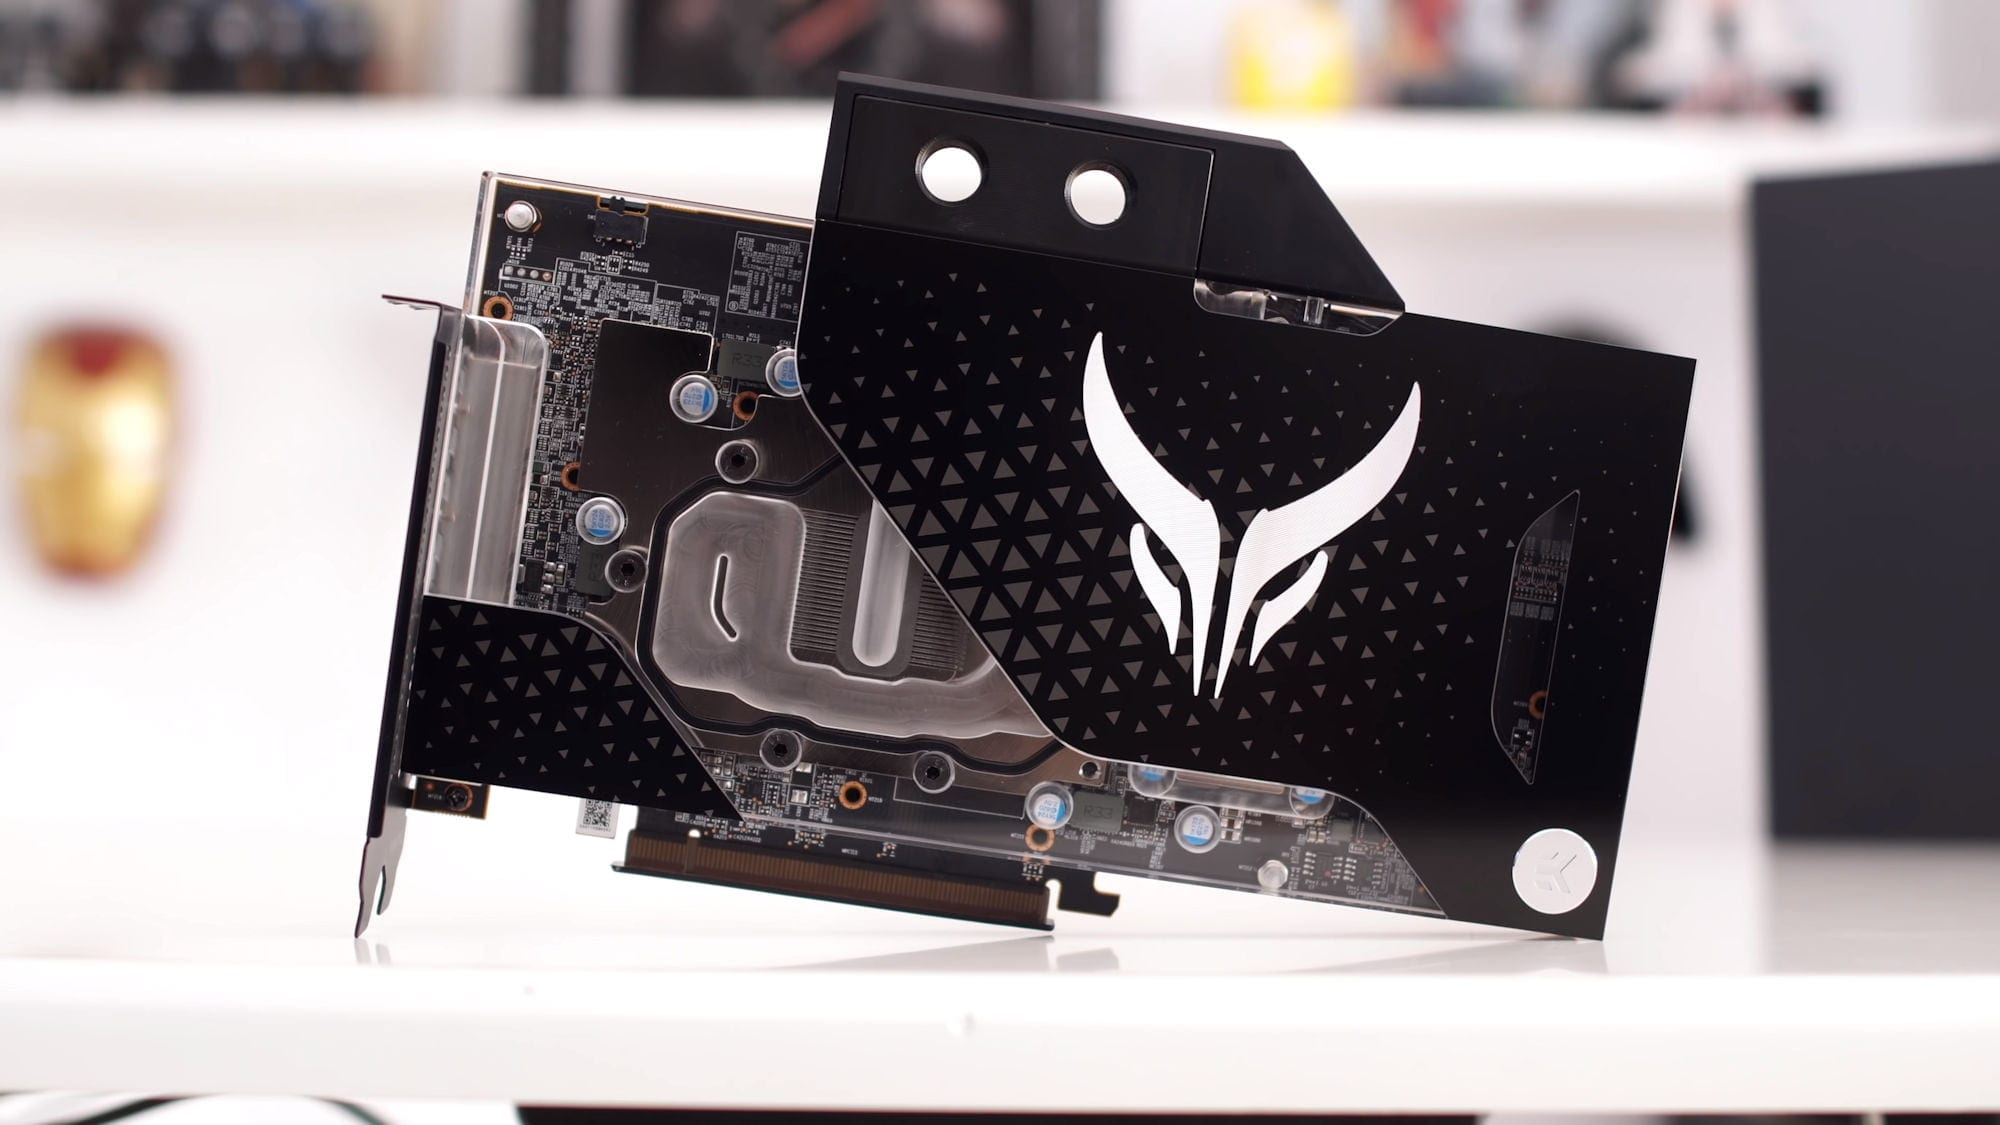 Splave took two golds with an overclocked AMD Ryzen 9 3900 processor